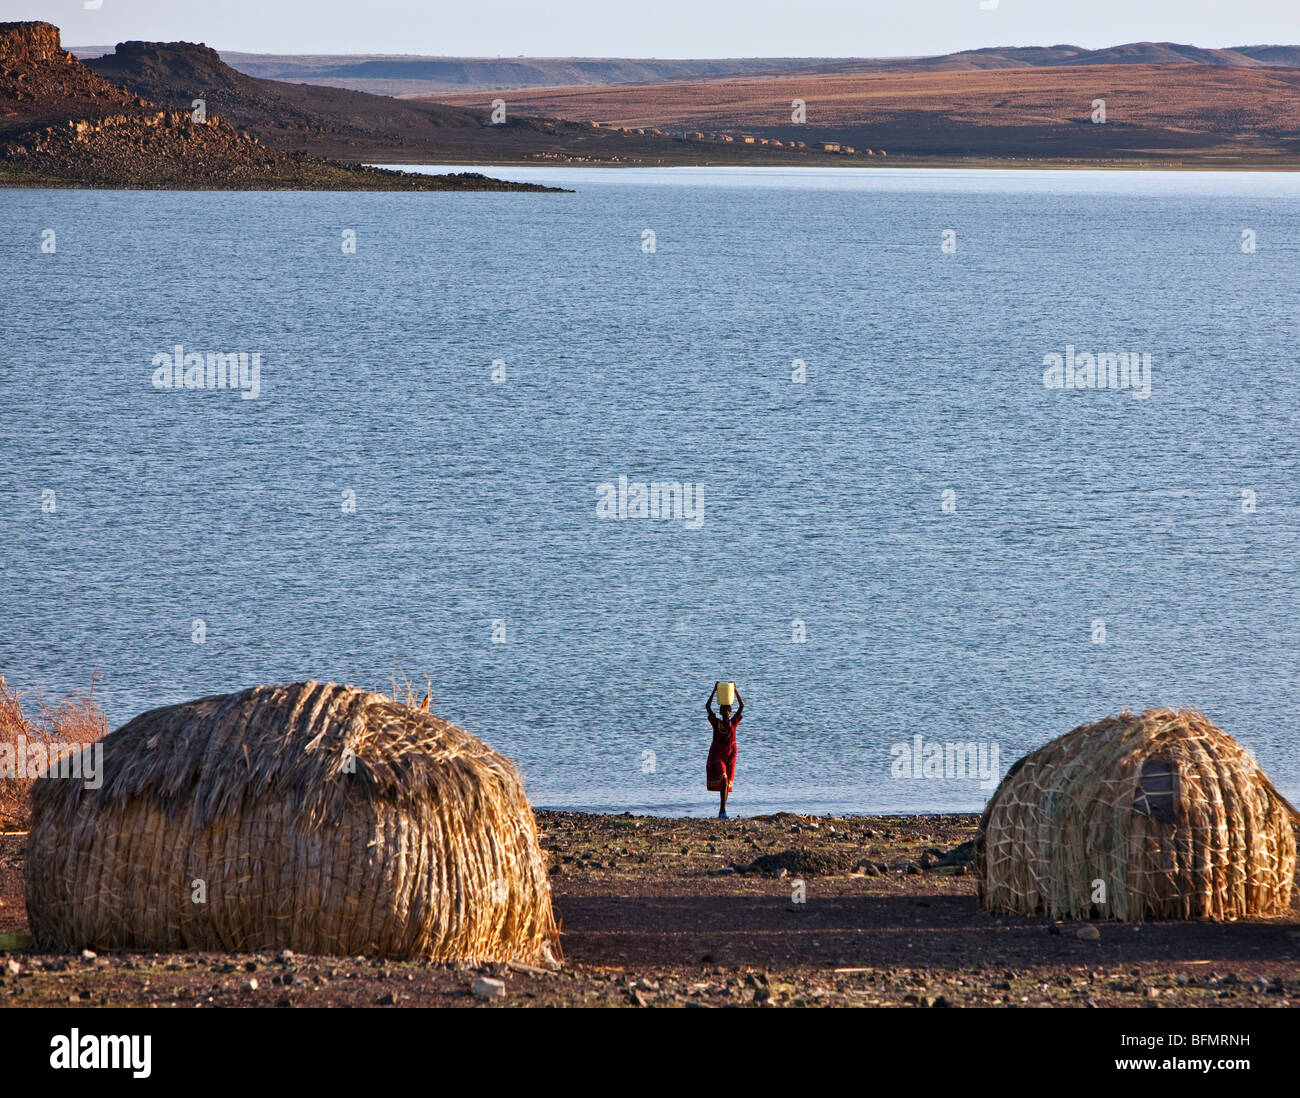 An El Molo woman fetches water from Lake Turkana. Typical dome-shaped El Molo houses in the foreground are made - Stock Image